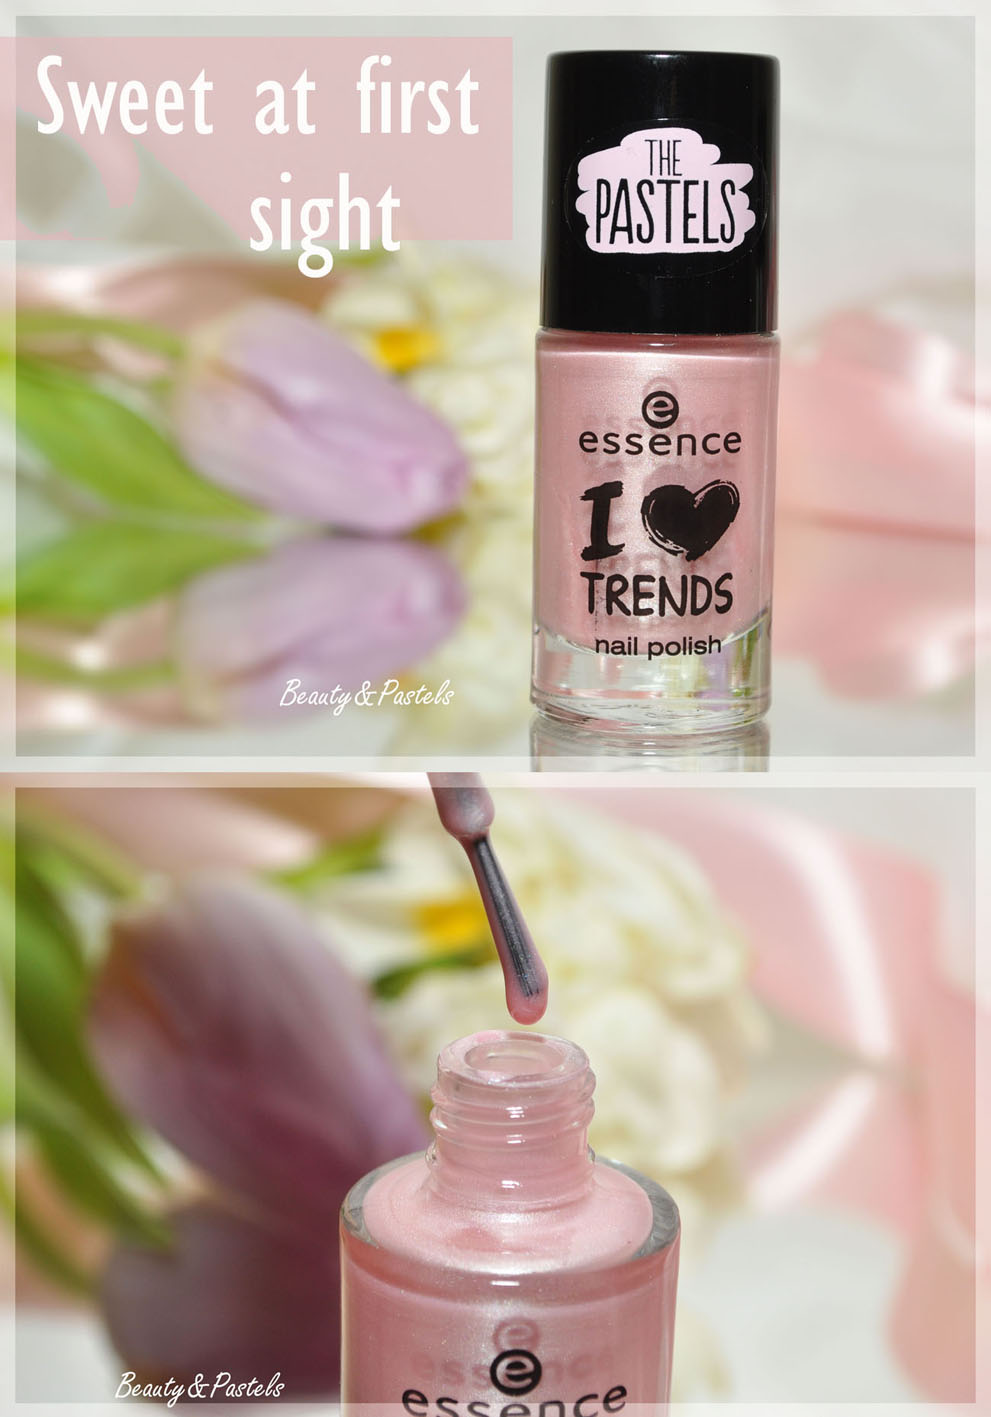 essence-sweet at first sight